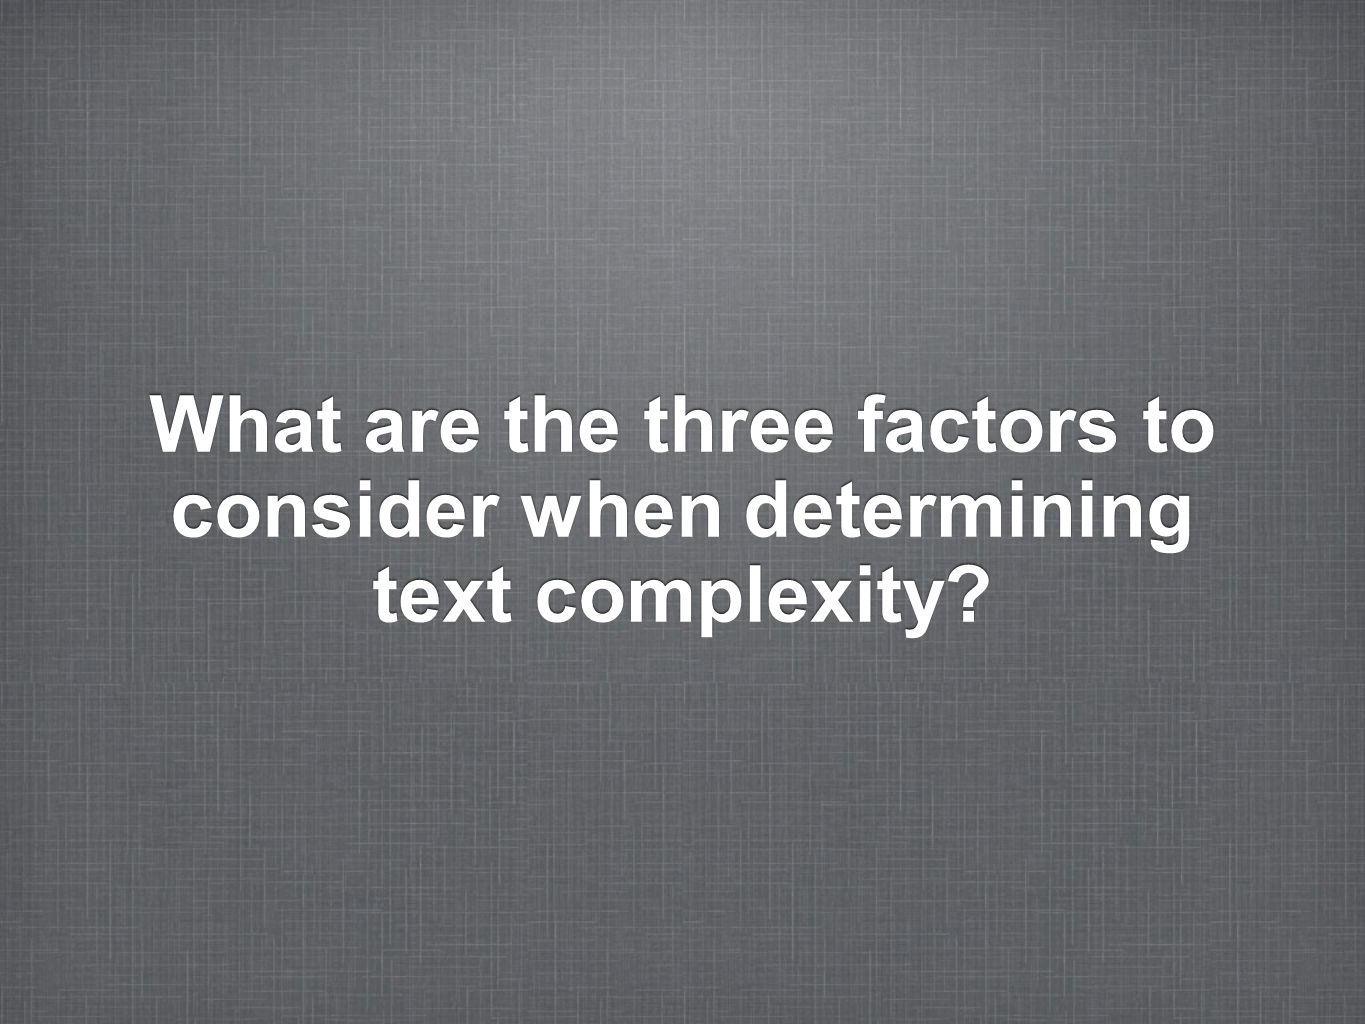 What are the three factors to consider when determining text complexity